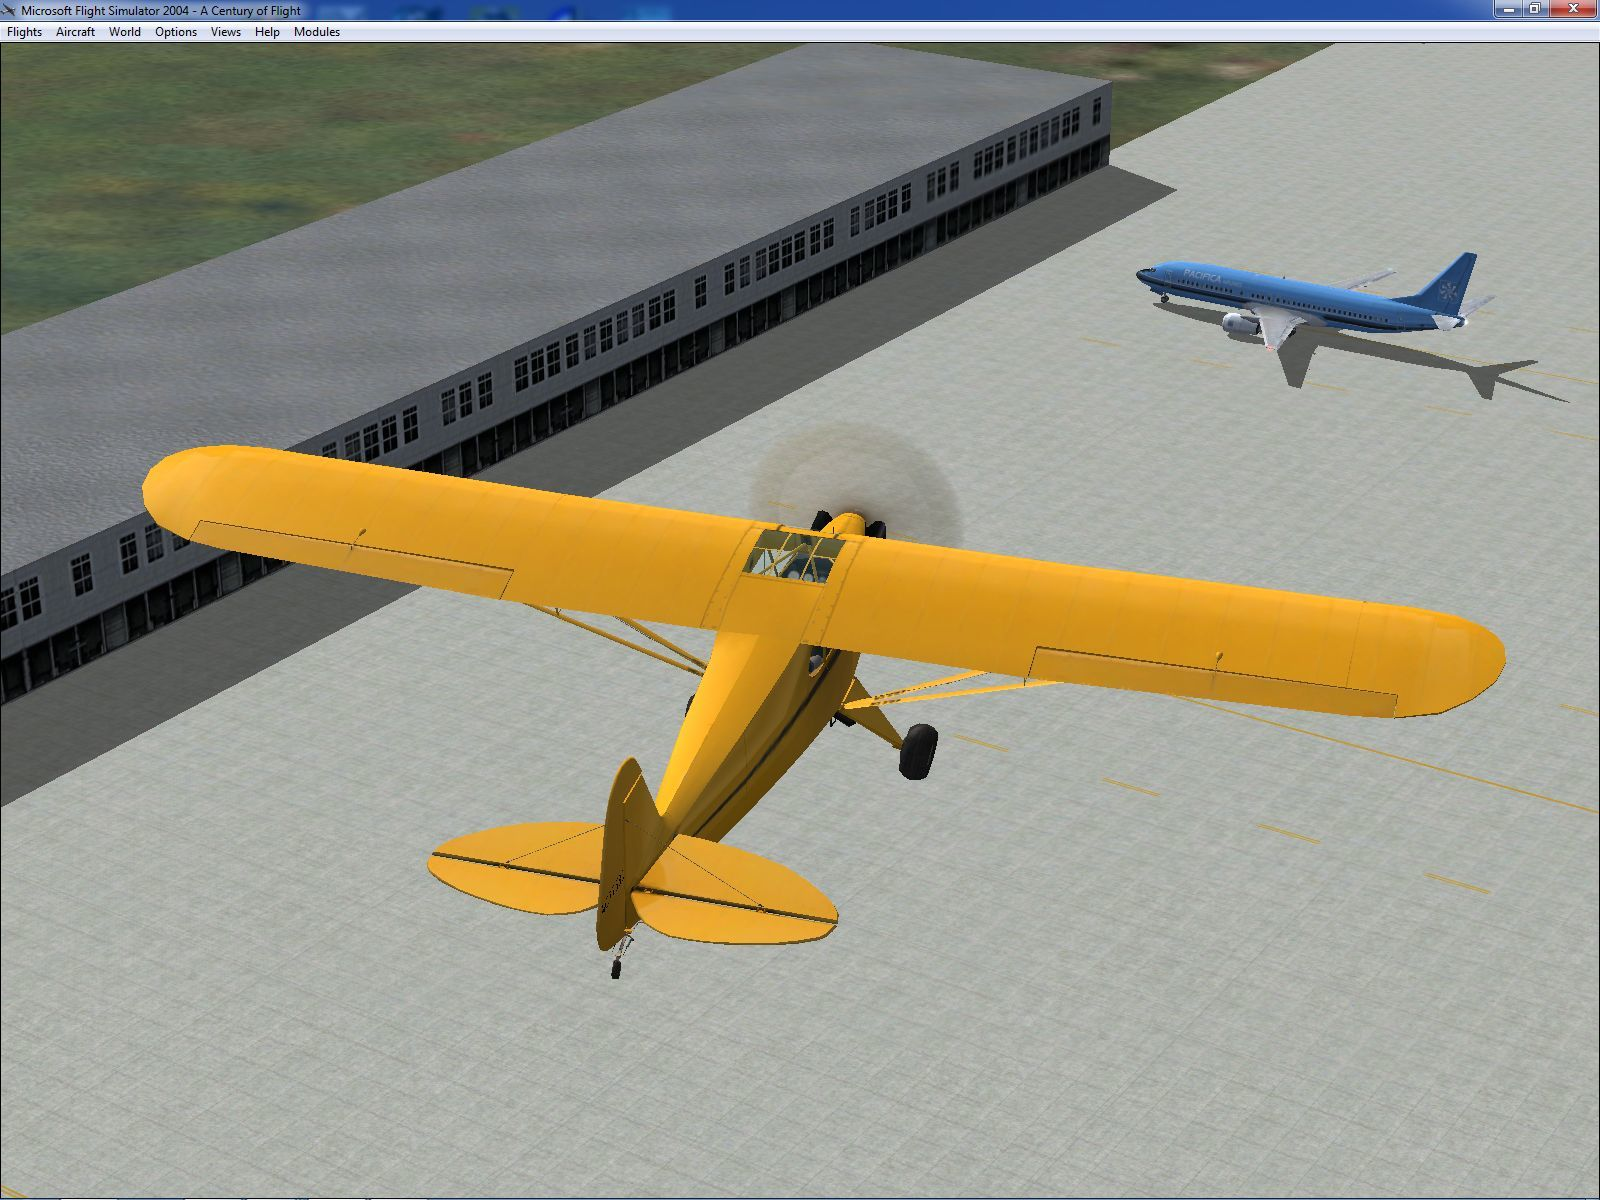 Microsoft Flight Simulator 2004: A Century of Flight Windows The Piper J-3 Cub is the plane that, allegedly, 75% of all American airmen in WWII learned to fly in. Here it's flying a circuit around Bratsk airport, Russia